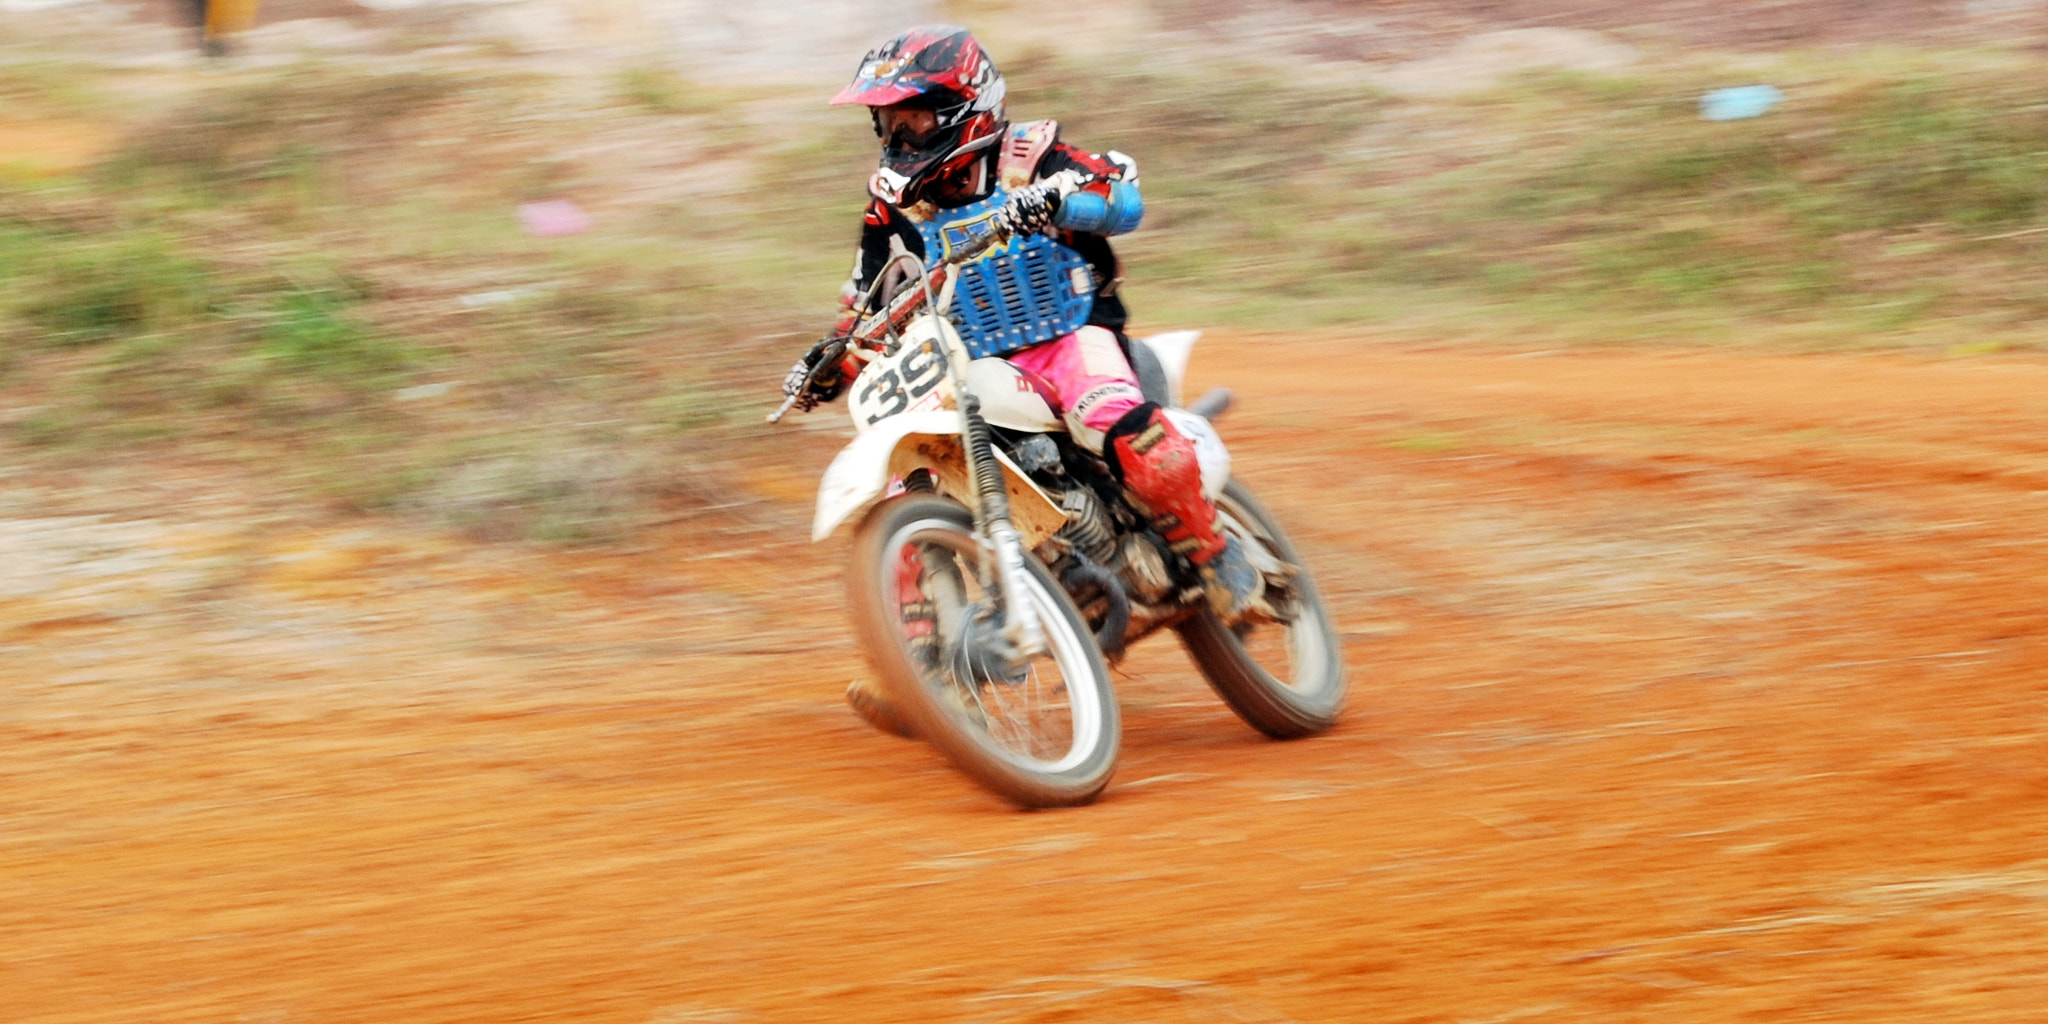 Photograph Motocross by Mohd Shafiq on 500px